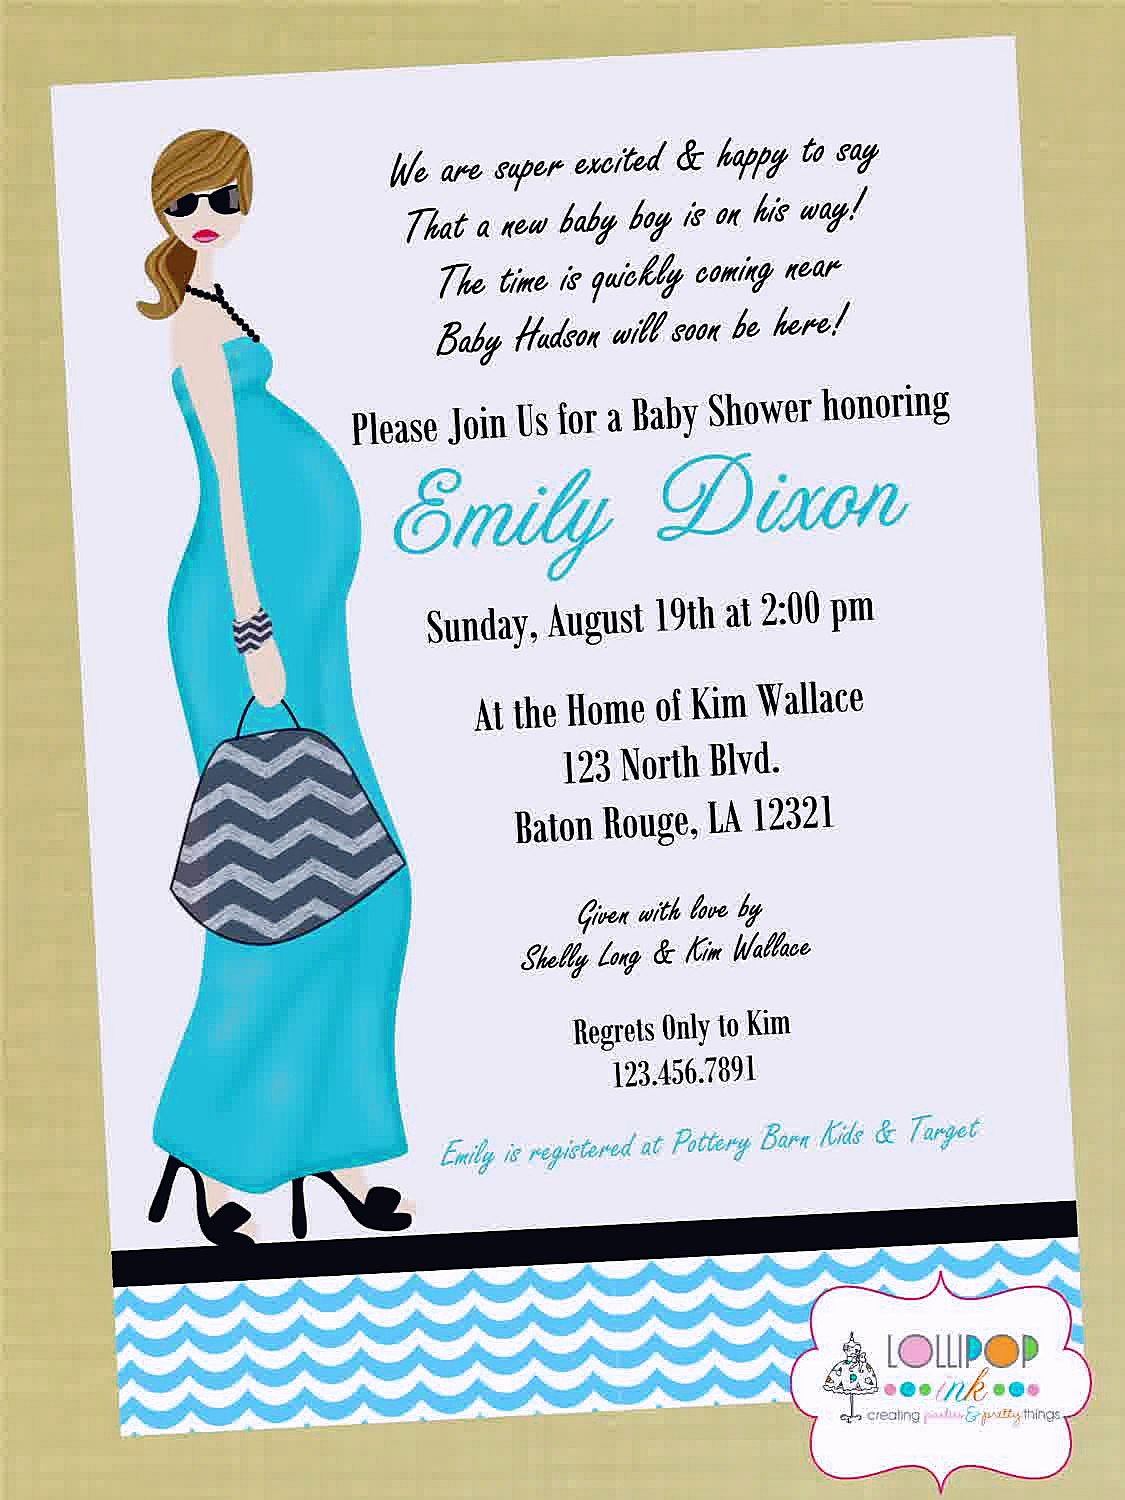 Spanish Baby Shower Invitation Wording Awesome Spanish Birthday Invitation Wording